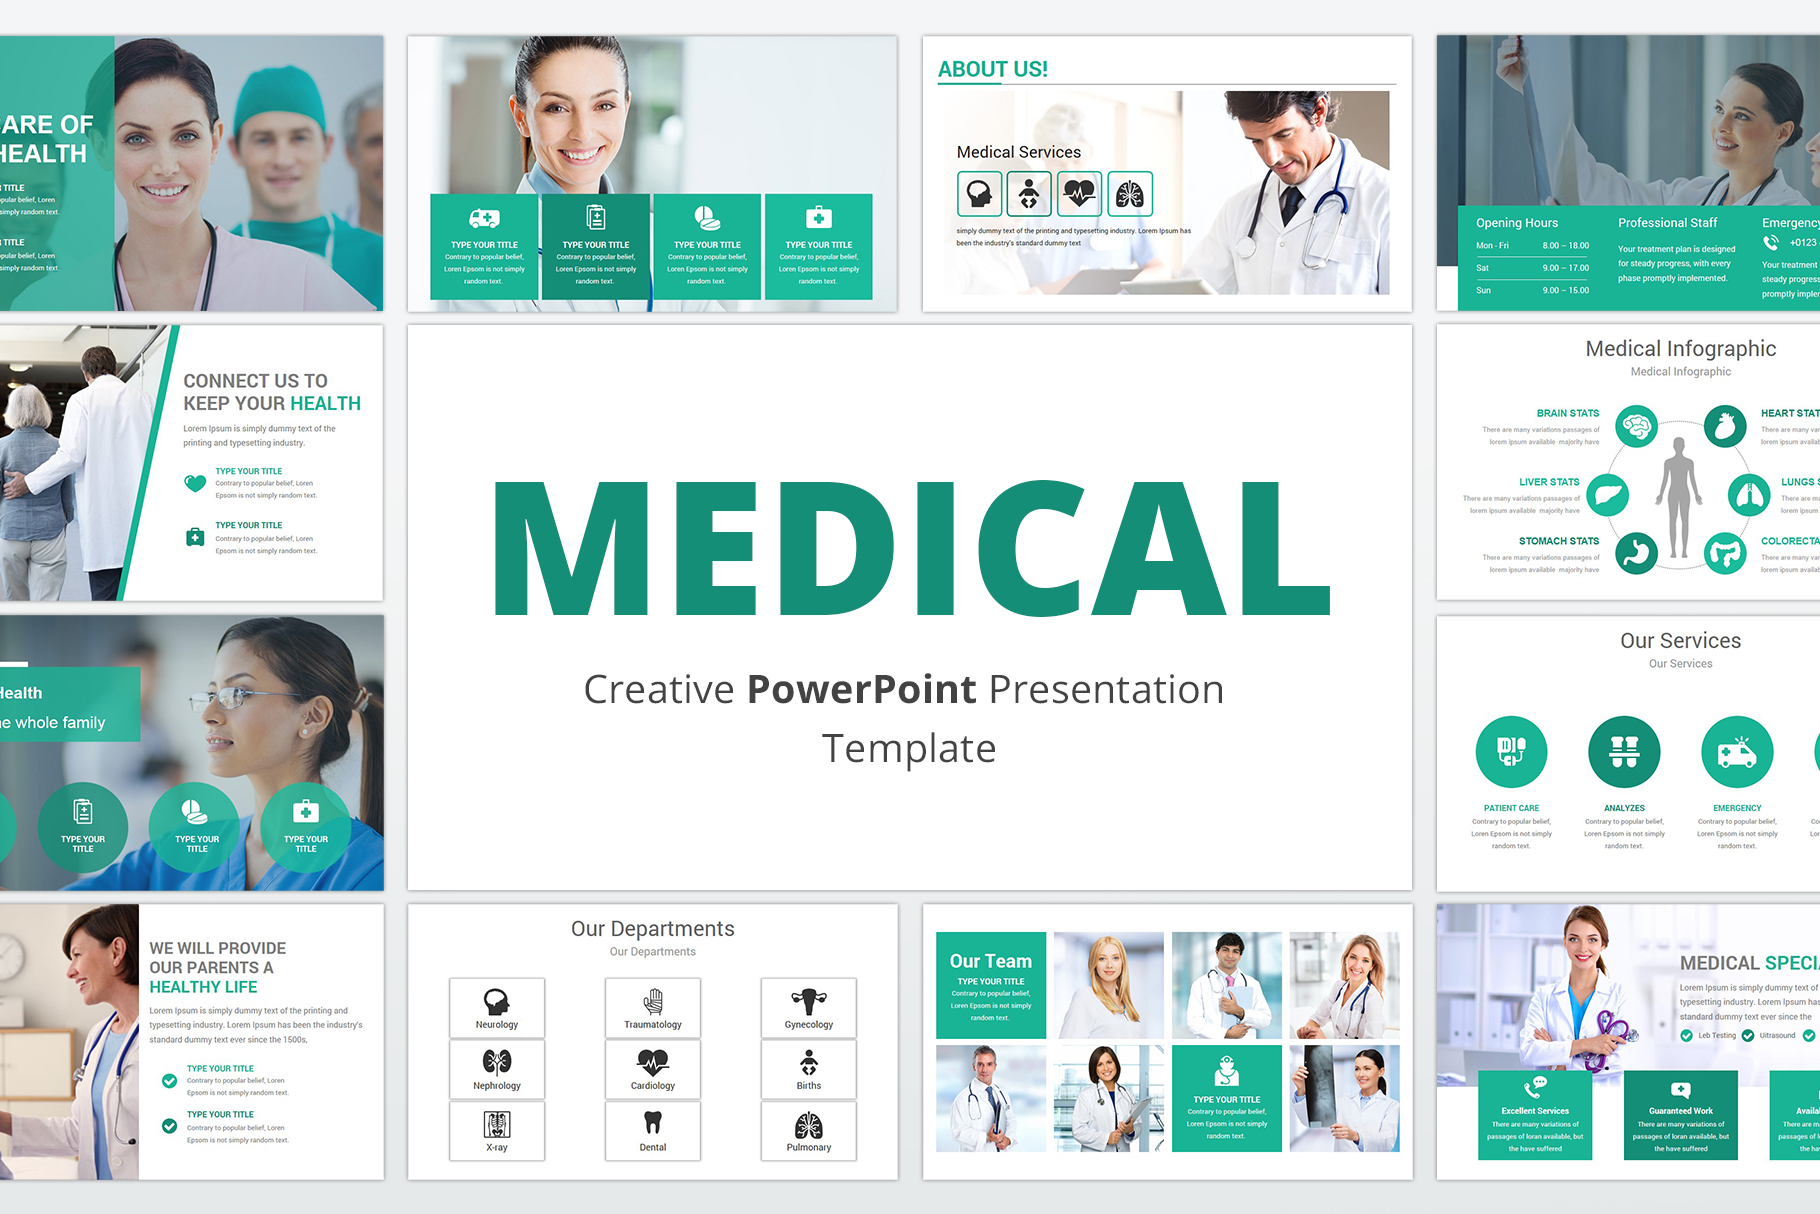 Medical and Healthcare Presentation PowerPoint Template example image 1